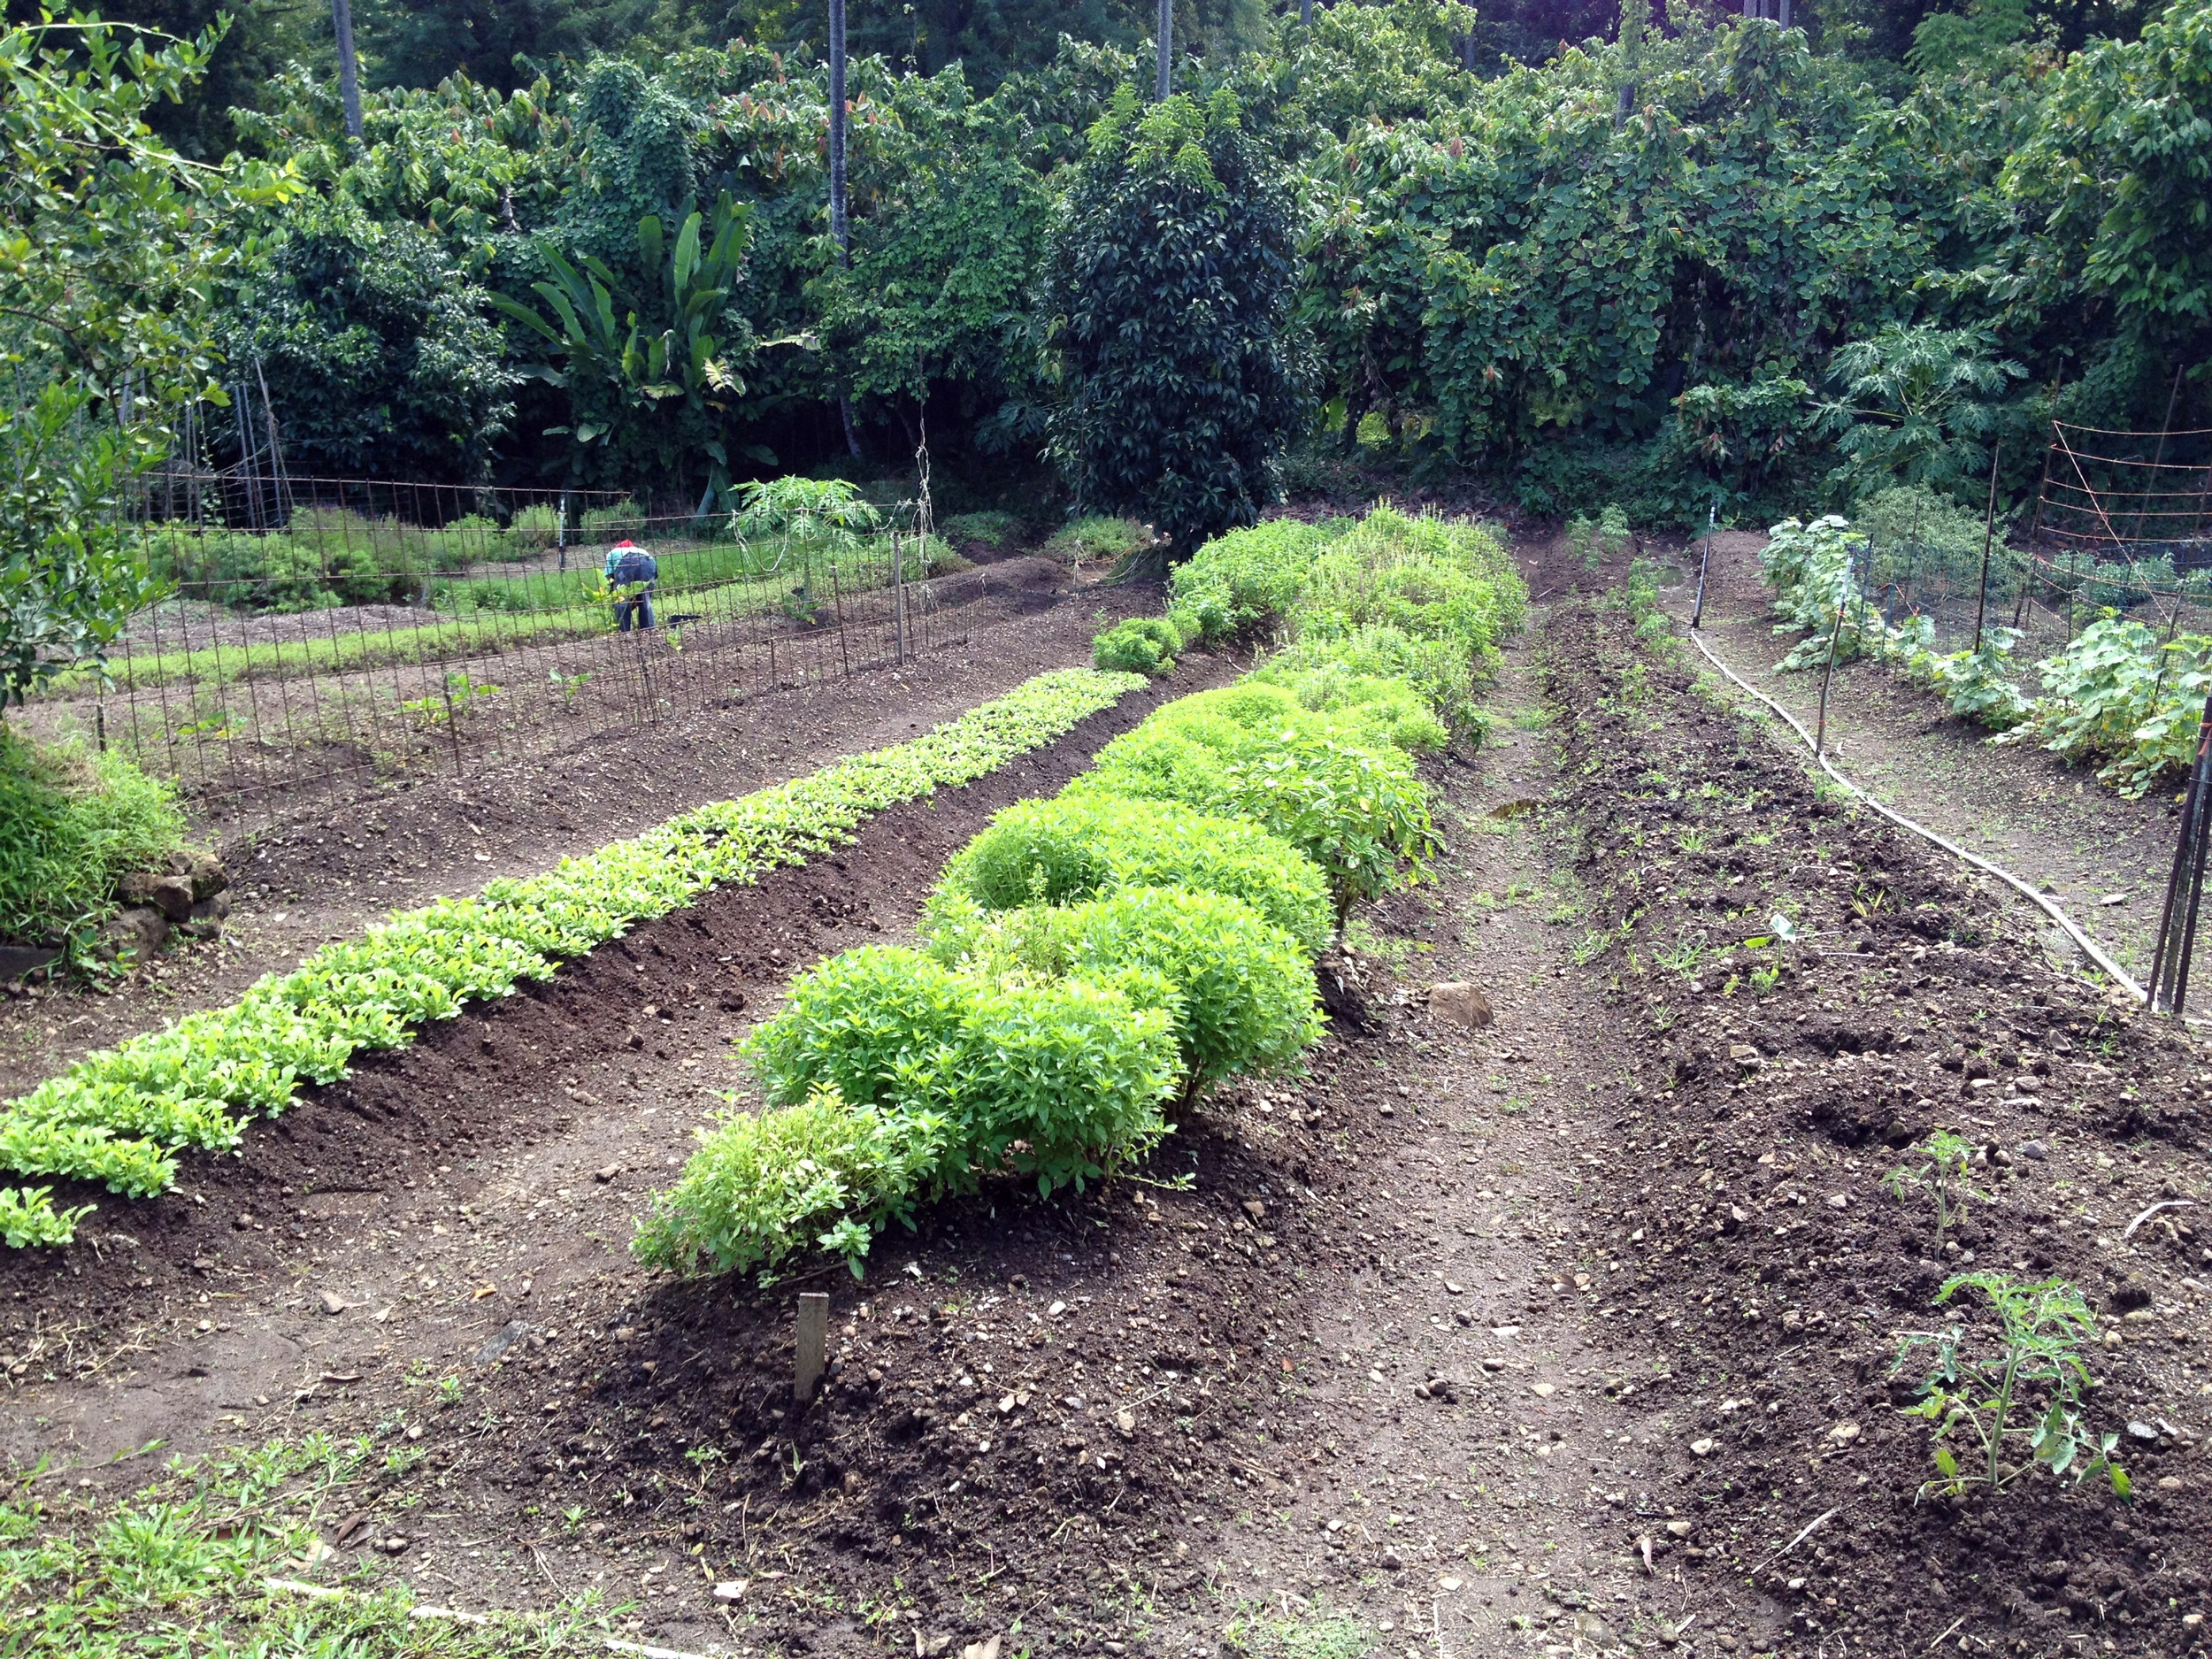 Brilliant green against moist brown soil, the plants at Emerald Estate, sister property of Jade Mountain, thrive in the tropical environment.